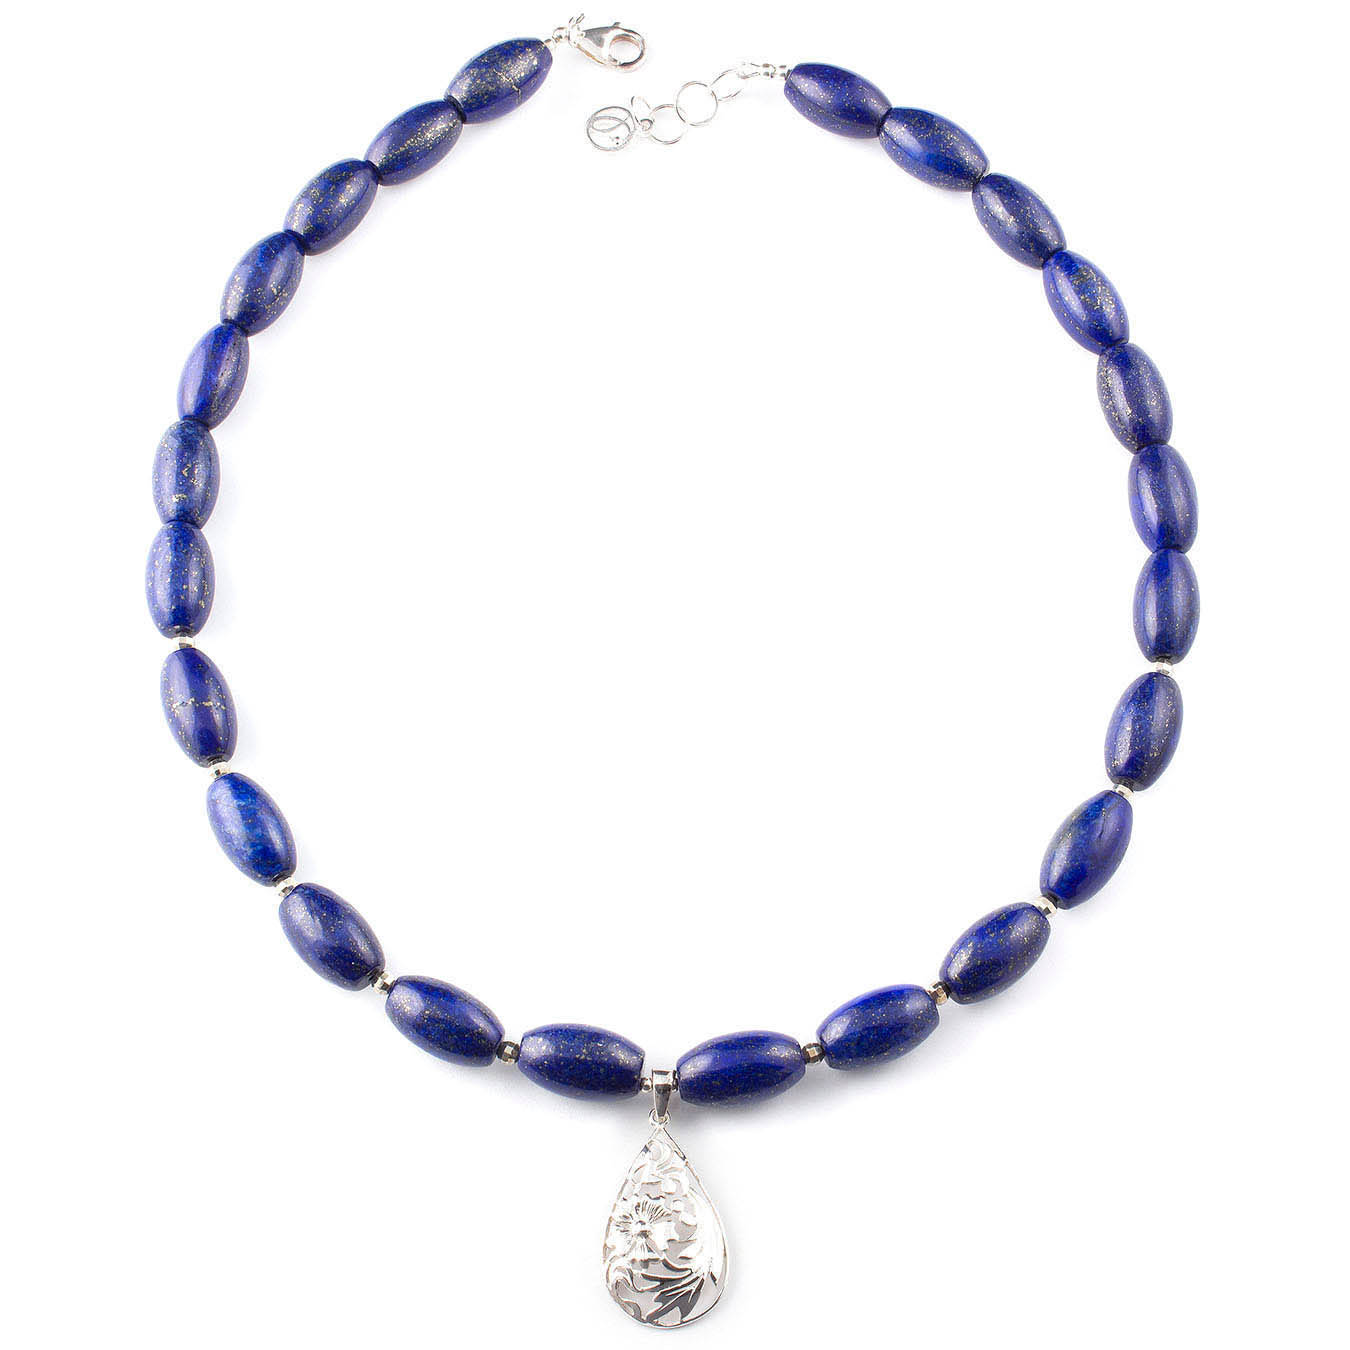 Handmade jewelry necklace made of lapis and teardrop silver pendant